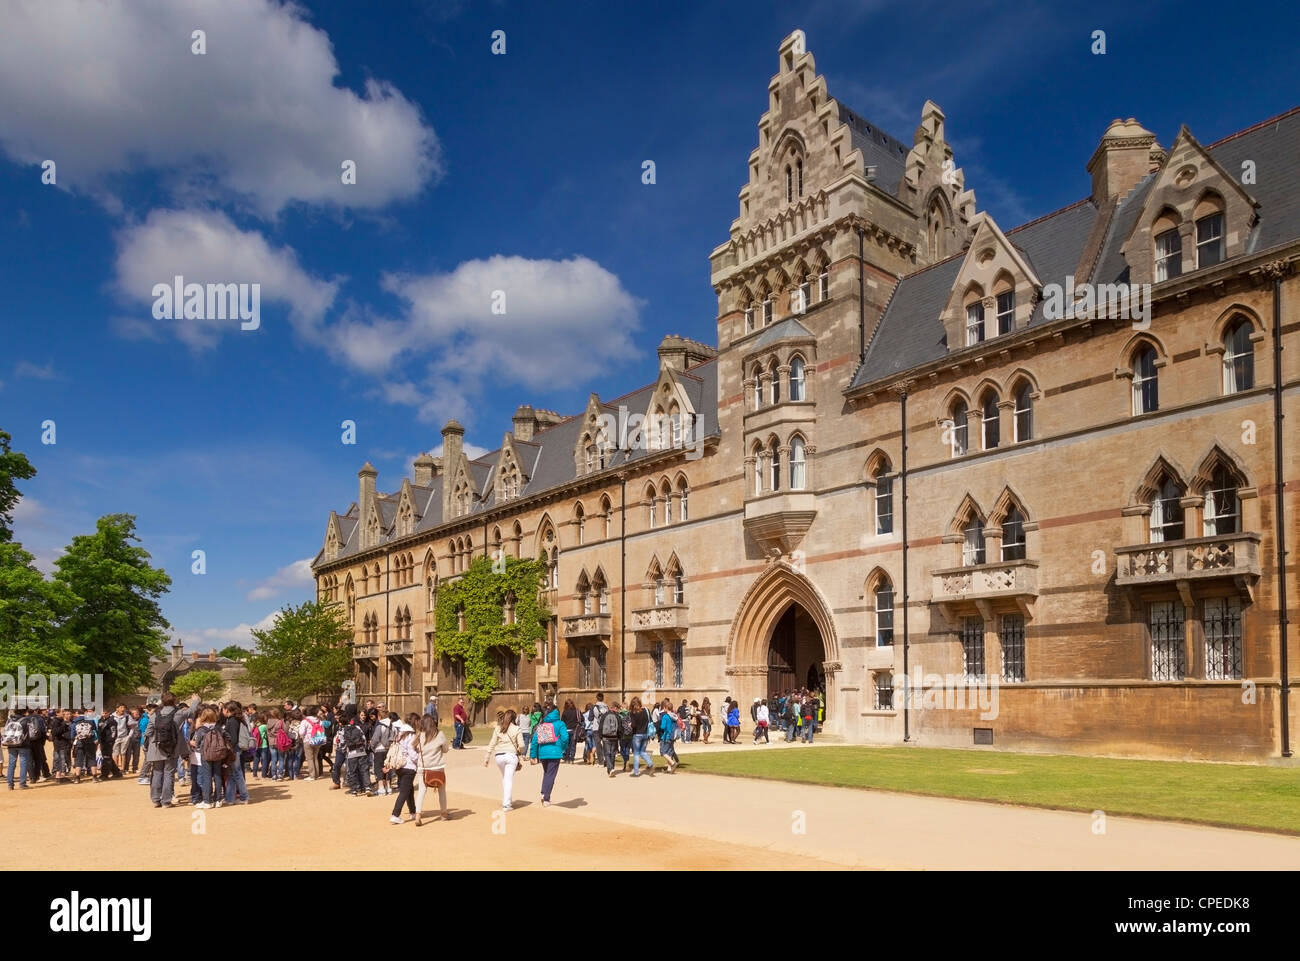 Tourists entering the Meadow Building at Christ Church College, Oxford. - Stock Image